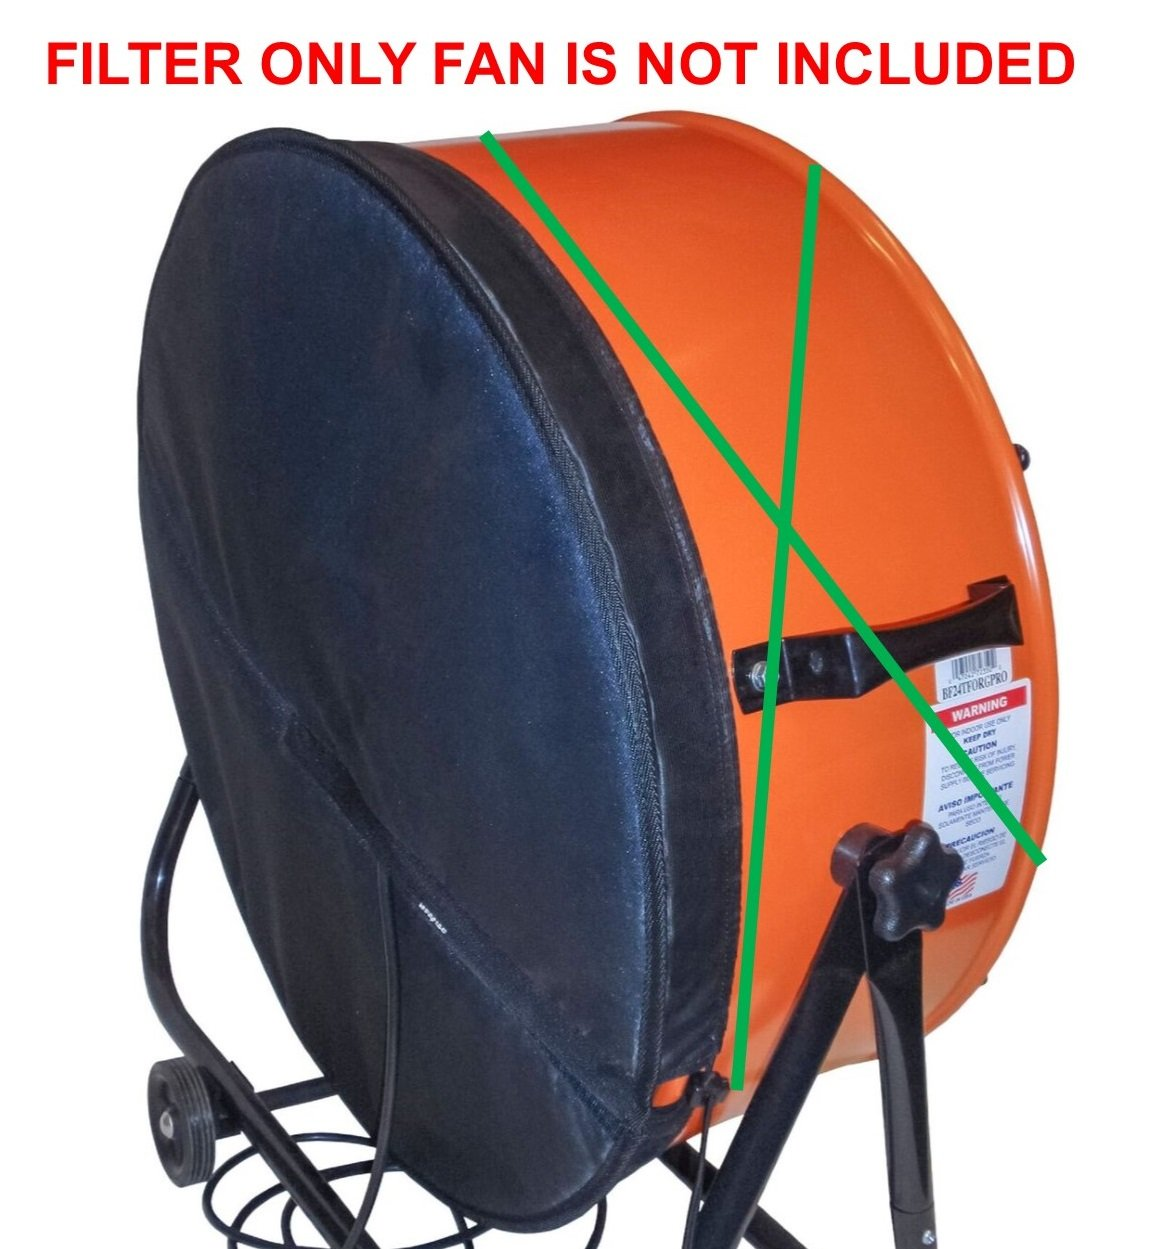 Washable Fan Filter - Made for 24'' Industrial Drum Fans. FILTER ONLY, fan not included.